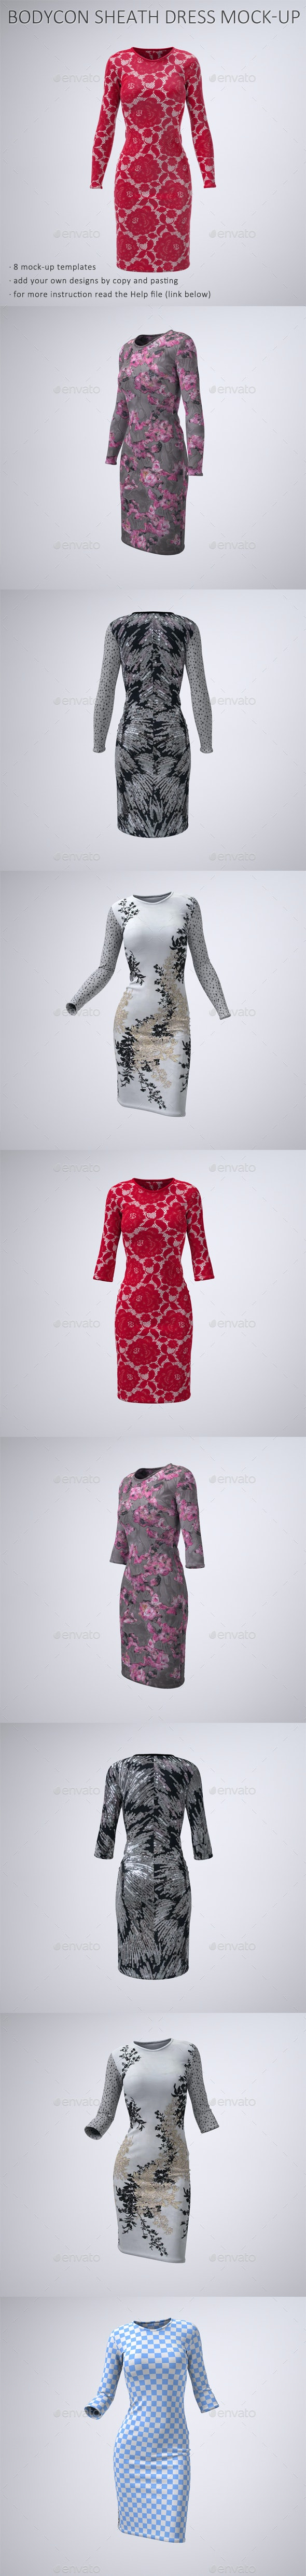 Body-Con Dress With Sleeves Mock-Up - Apparel Product Mock-Ups